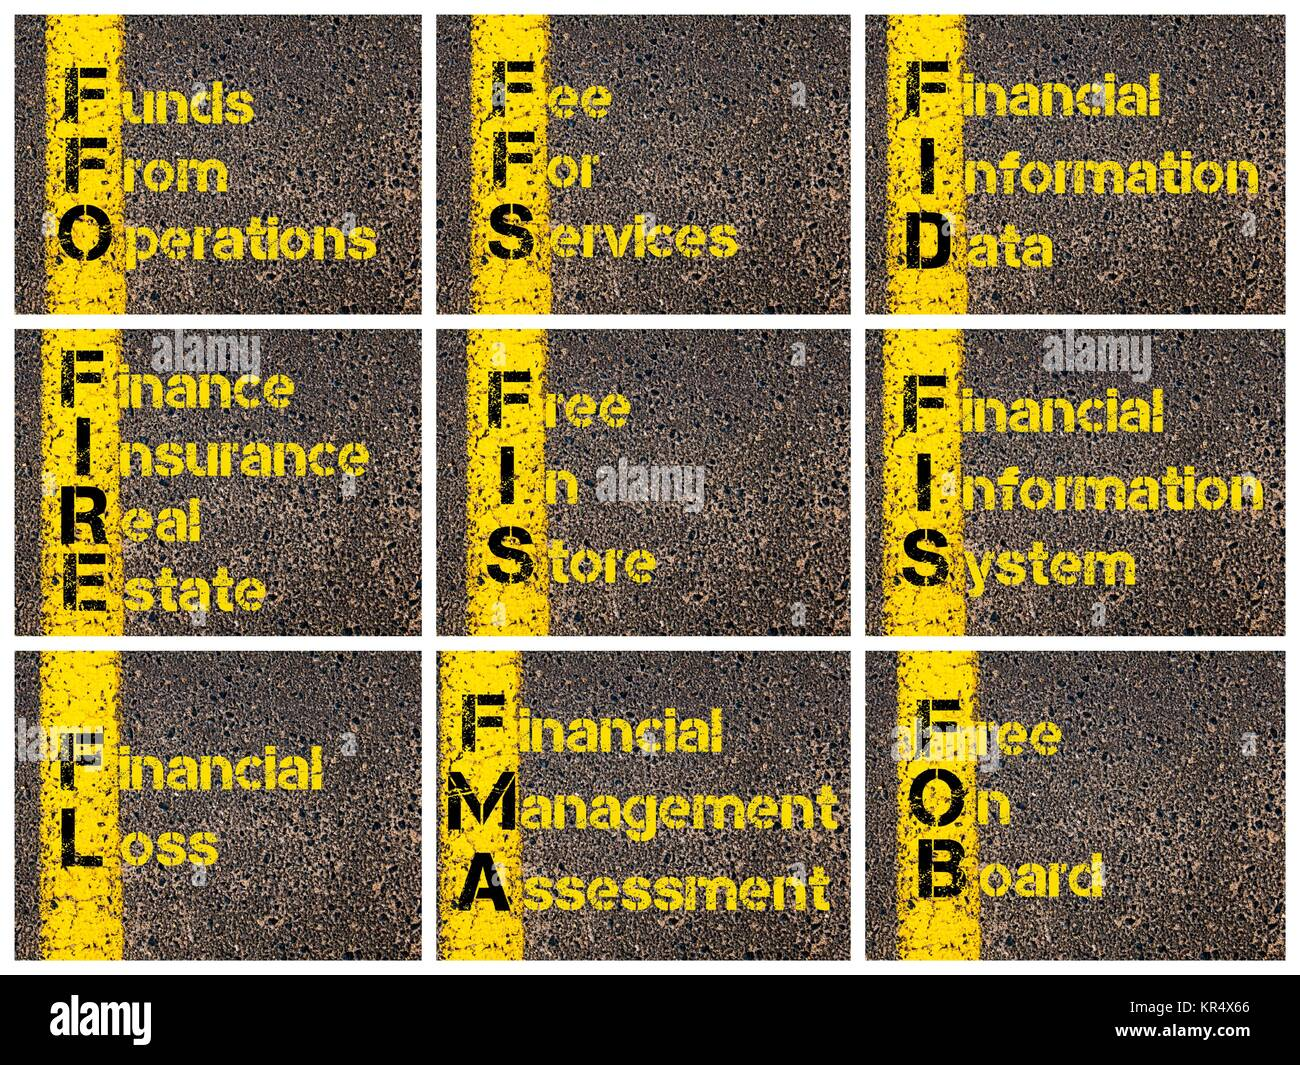 Photo collage of business acronyms Stock Photo: 169138766